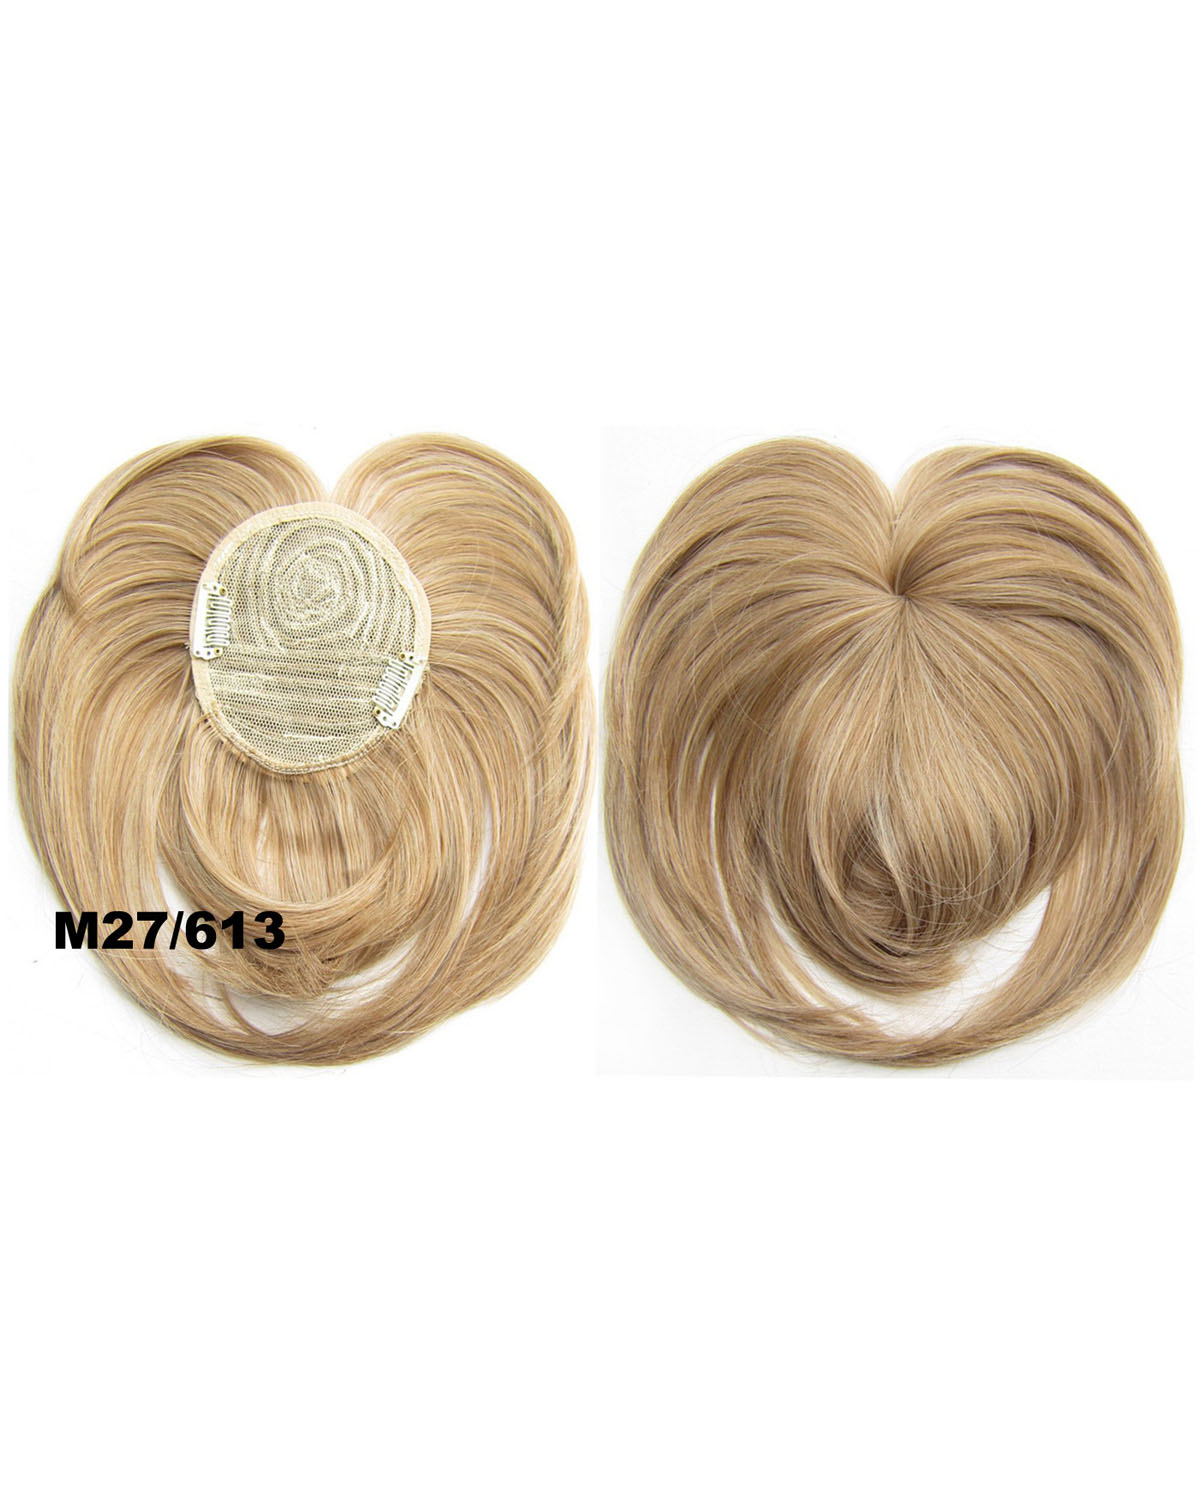 Girls Stylish  Straight Short Bangs Clip in Synthetic Hair Extension Fringe Bangs Hairpiece  M27/613#